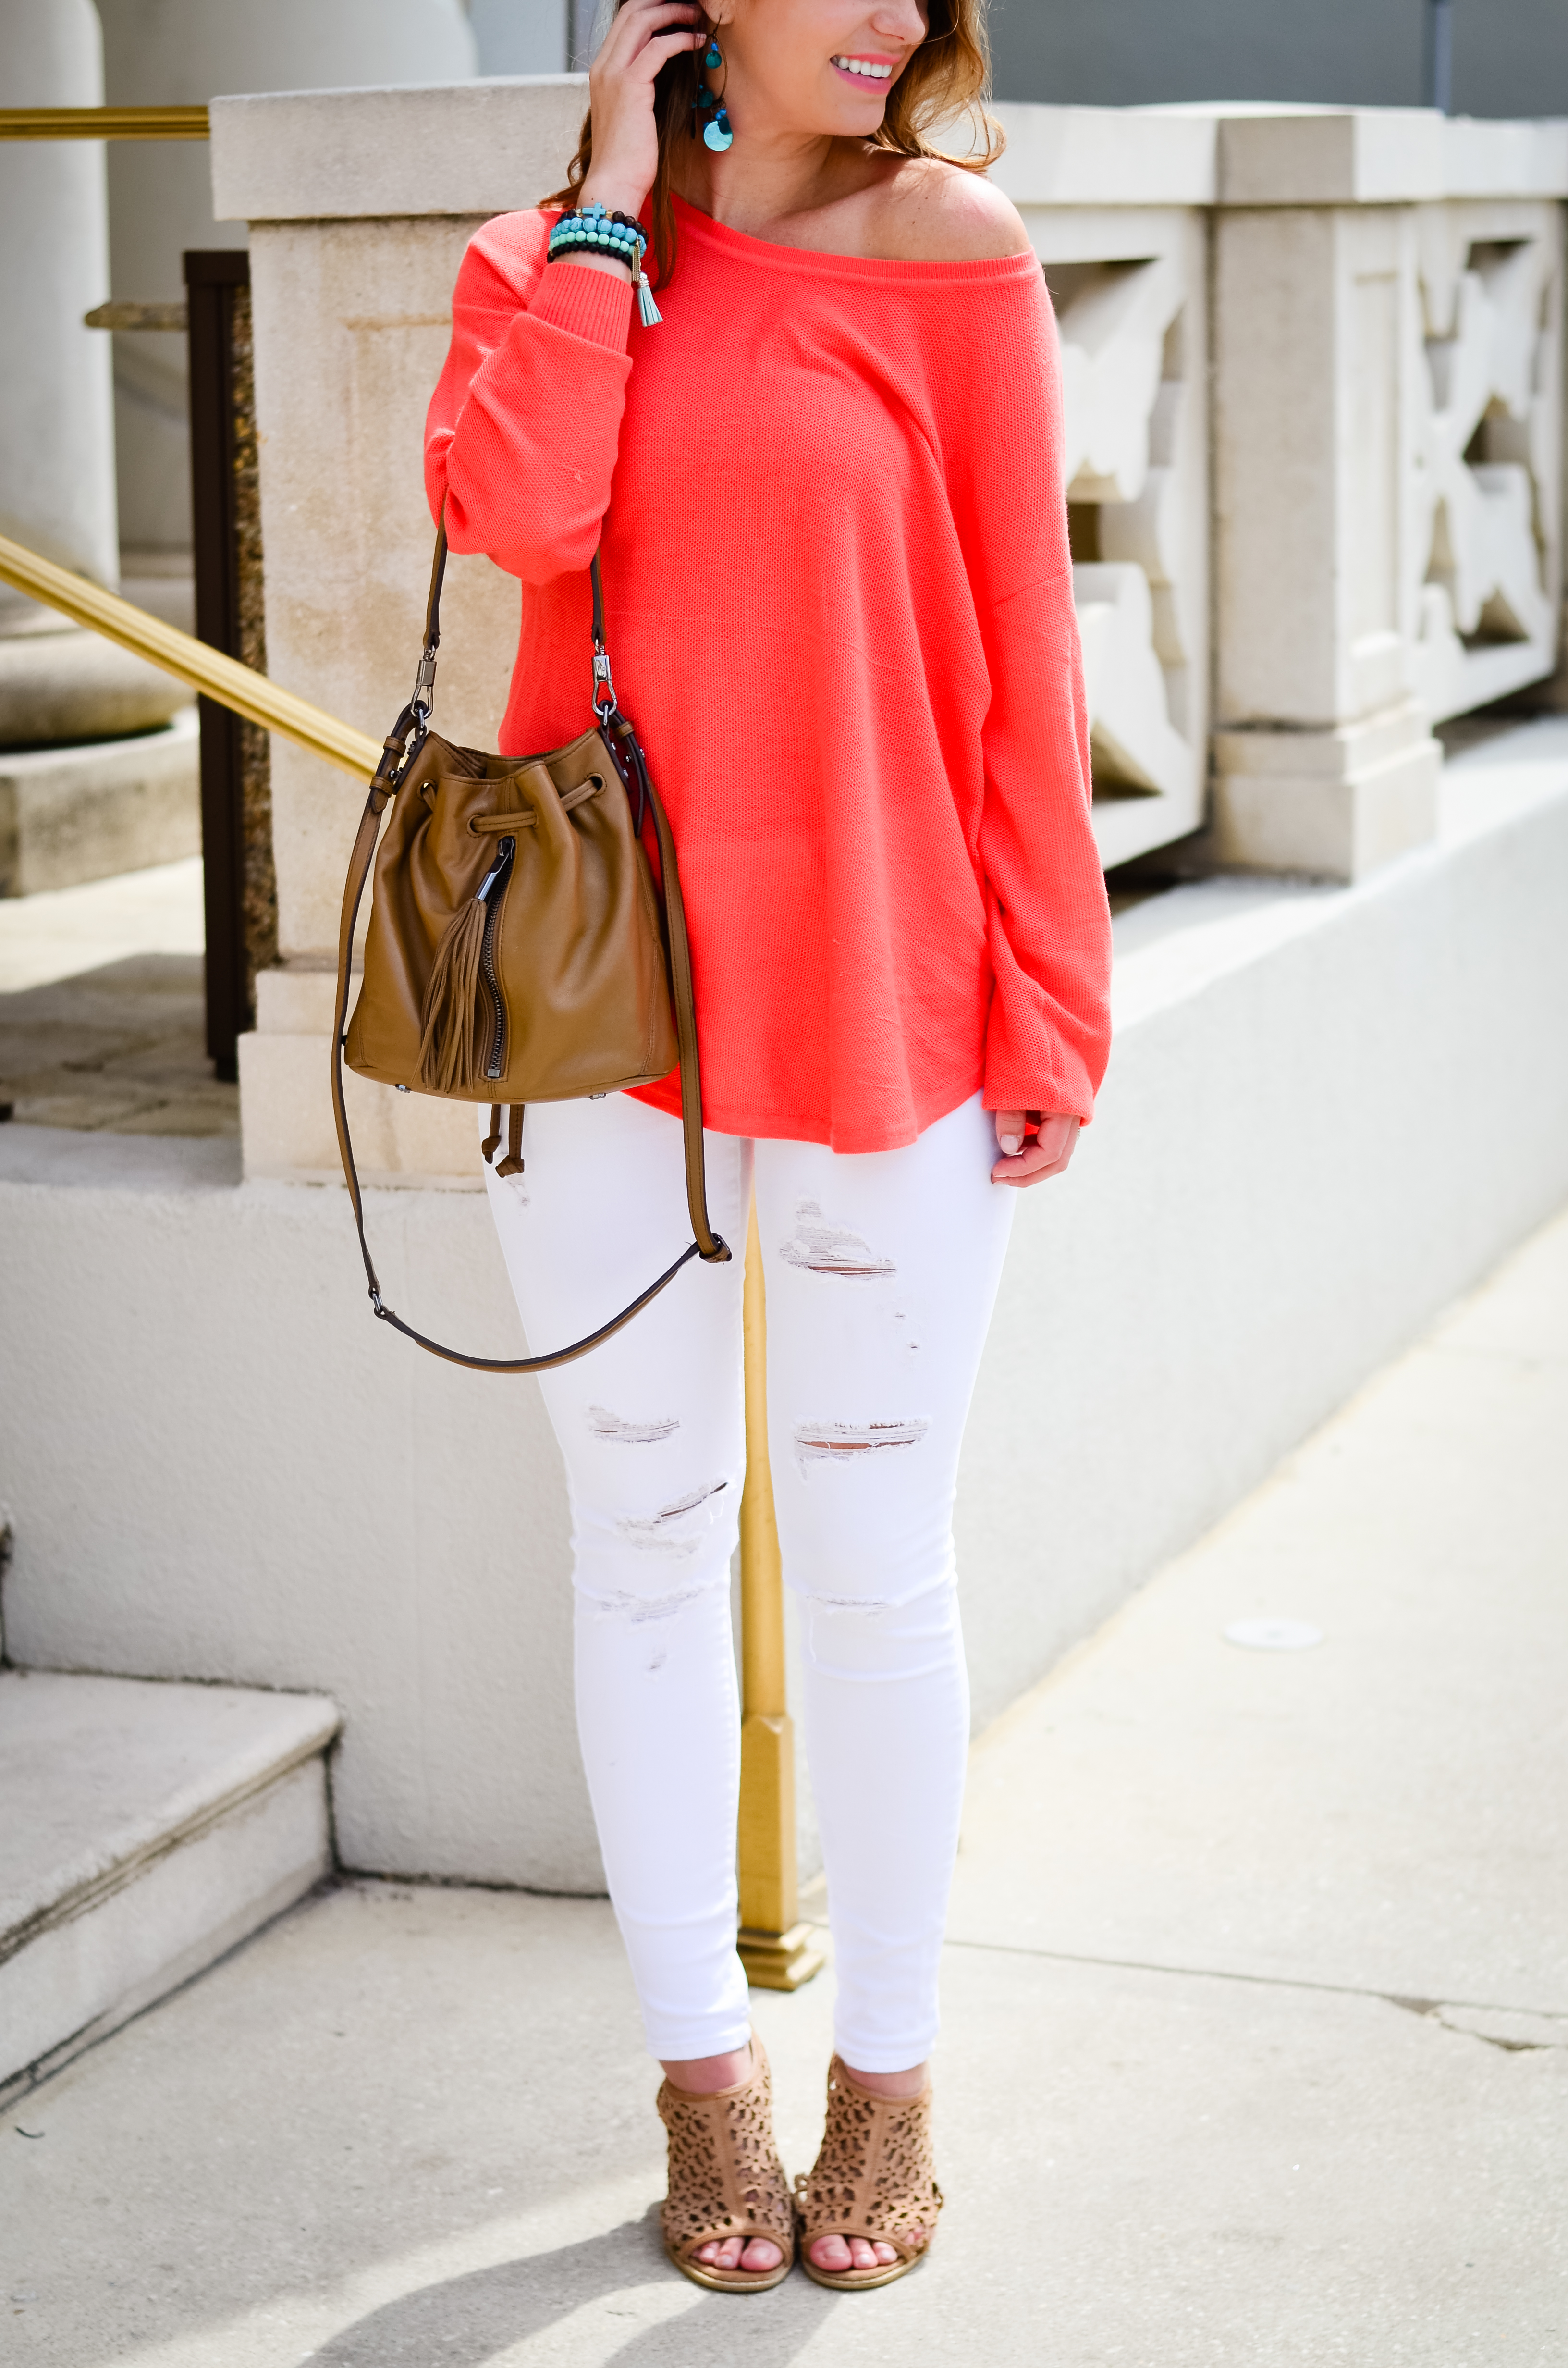 Coral Sweater in St. Aug-15